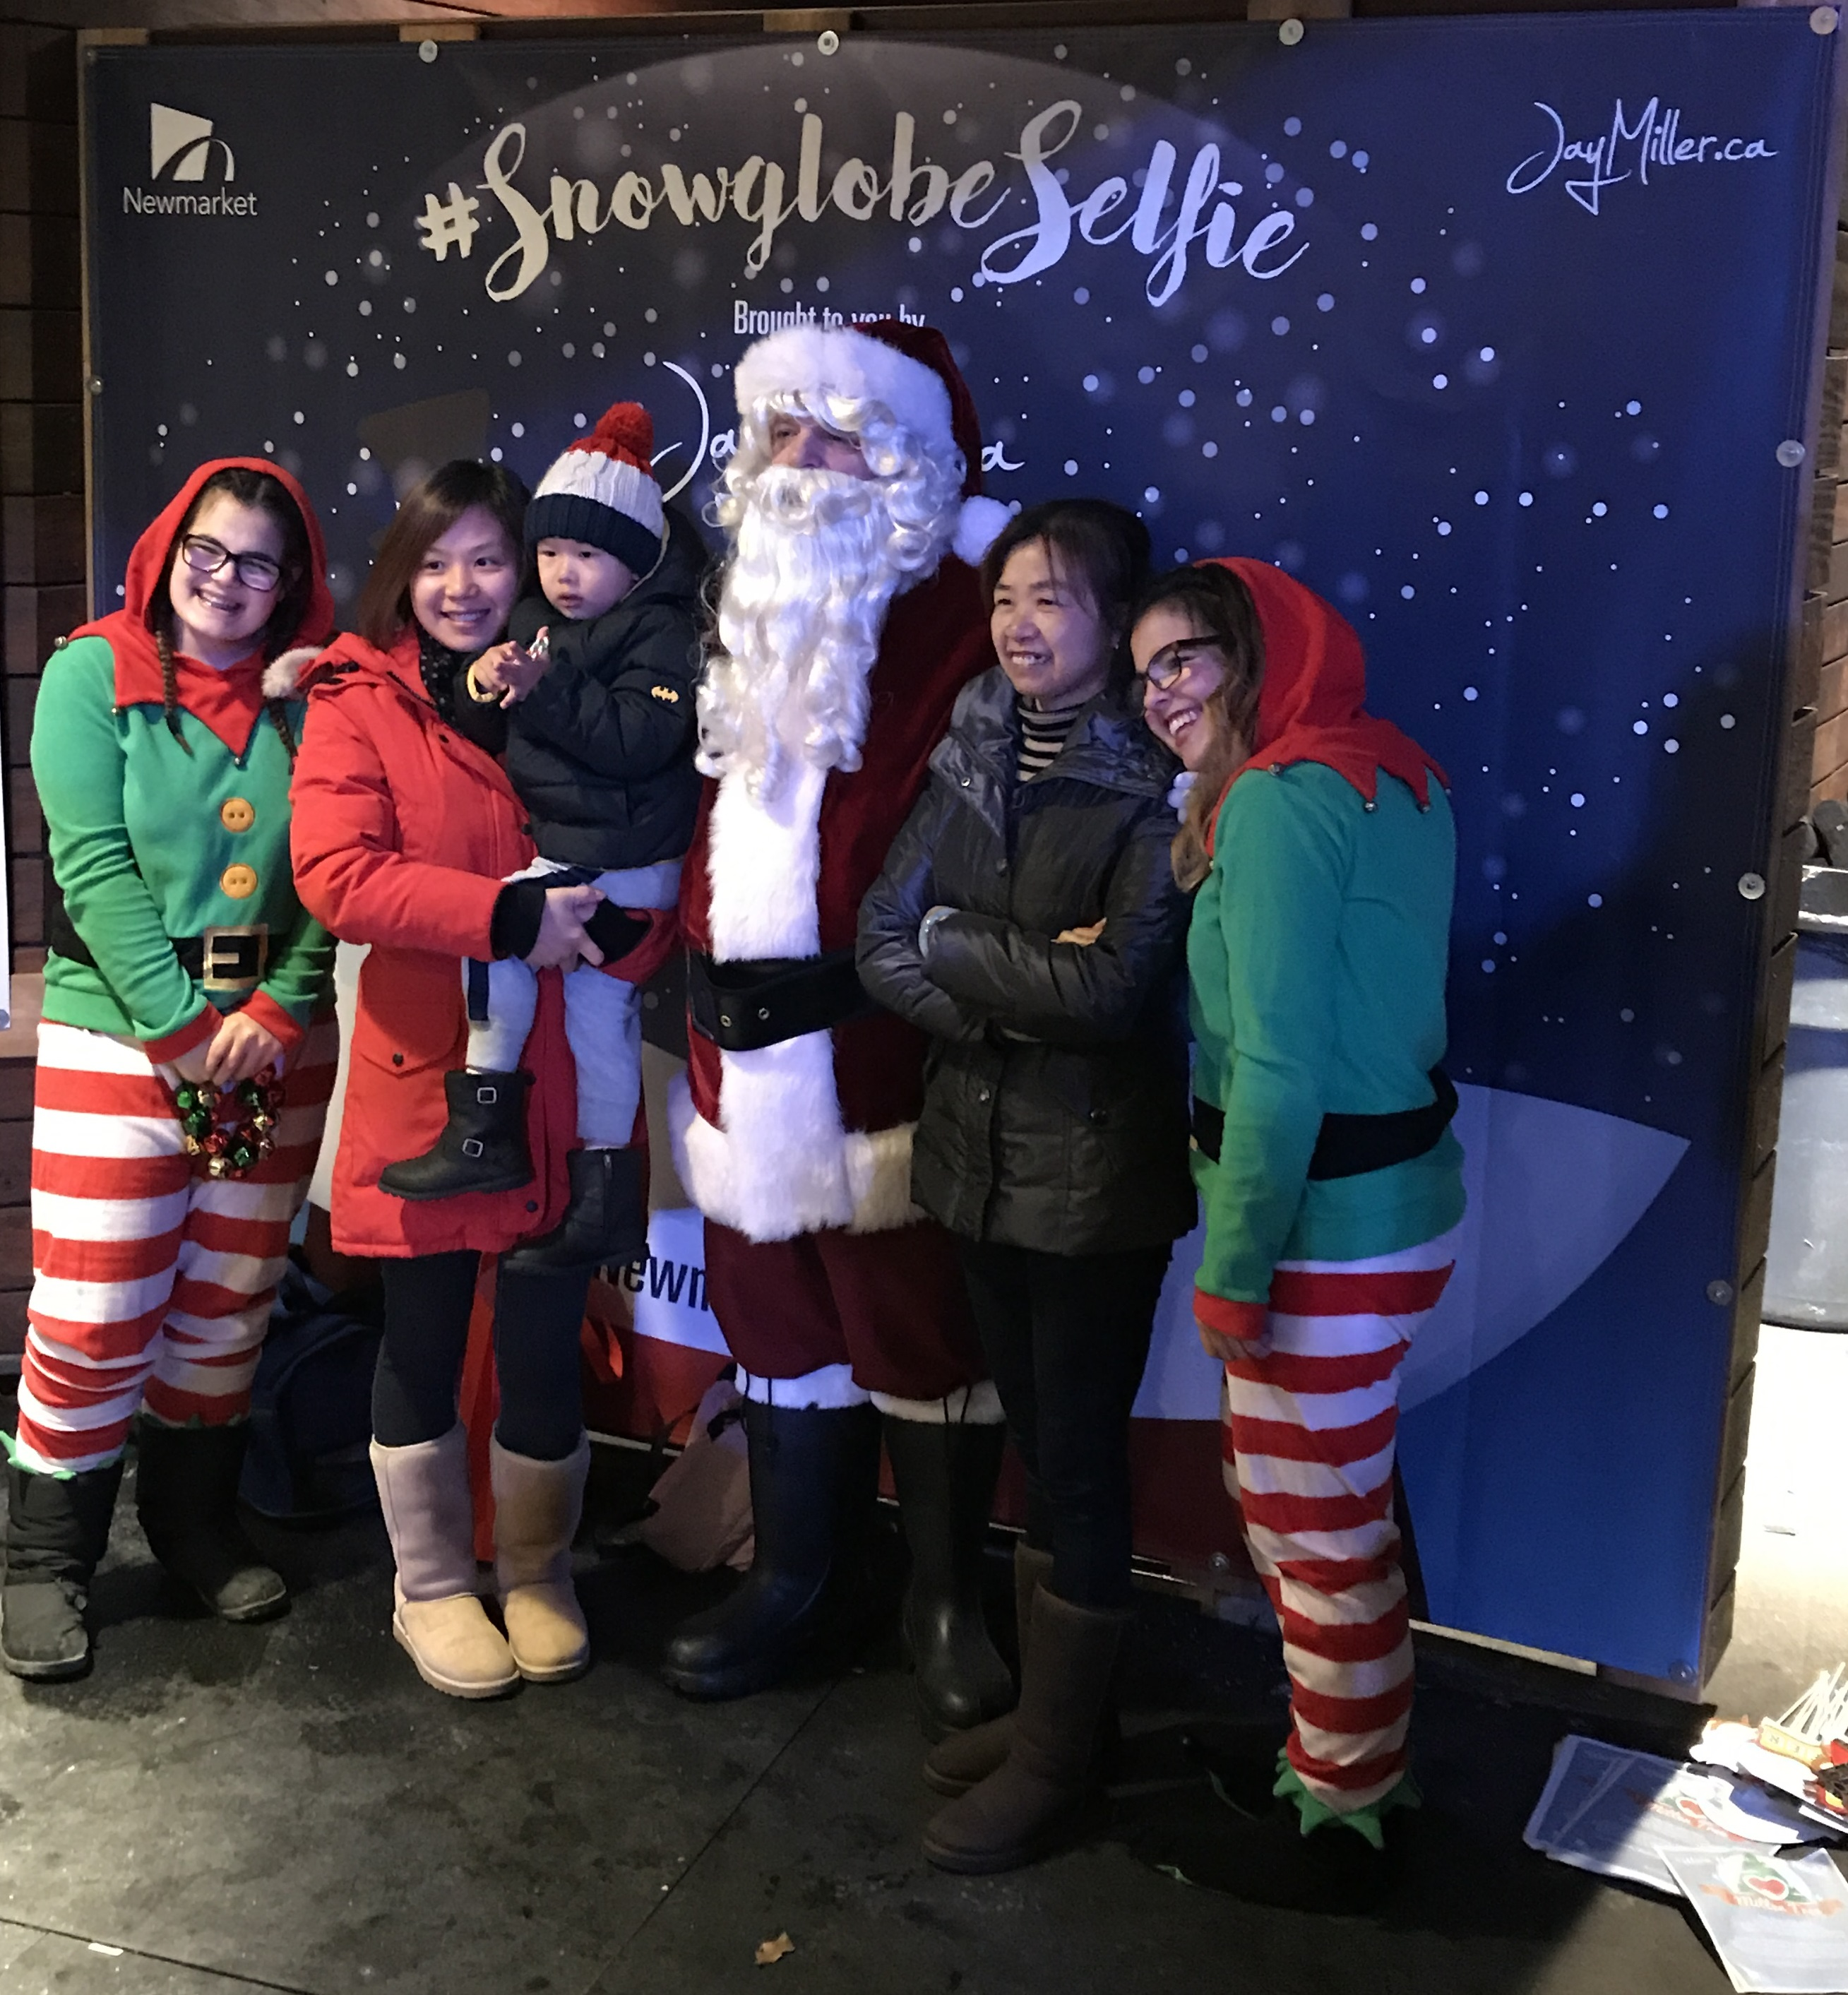 image of Snowglobe Selfie with Santa Claus and his elves